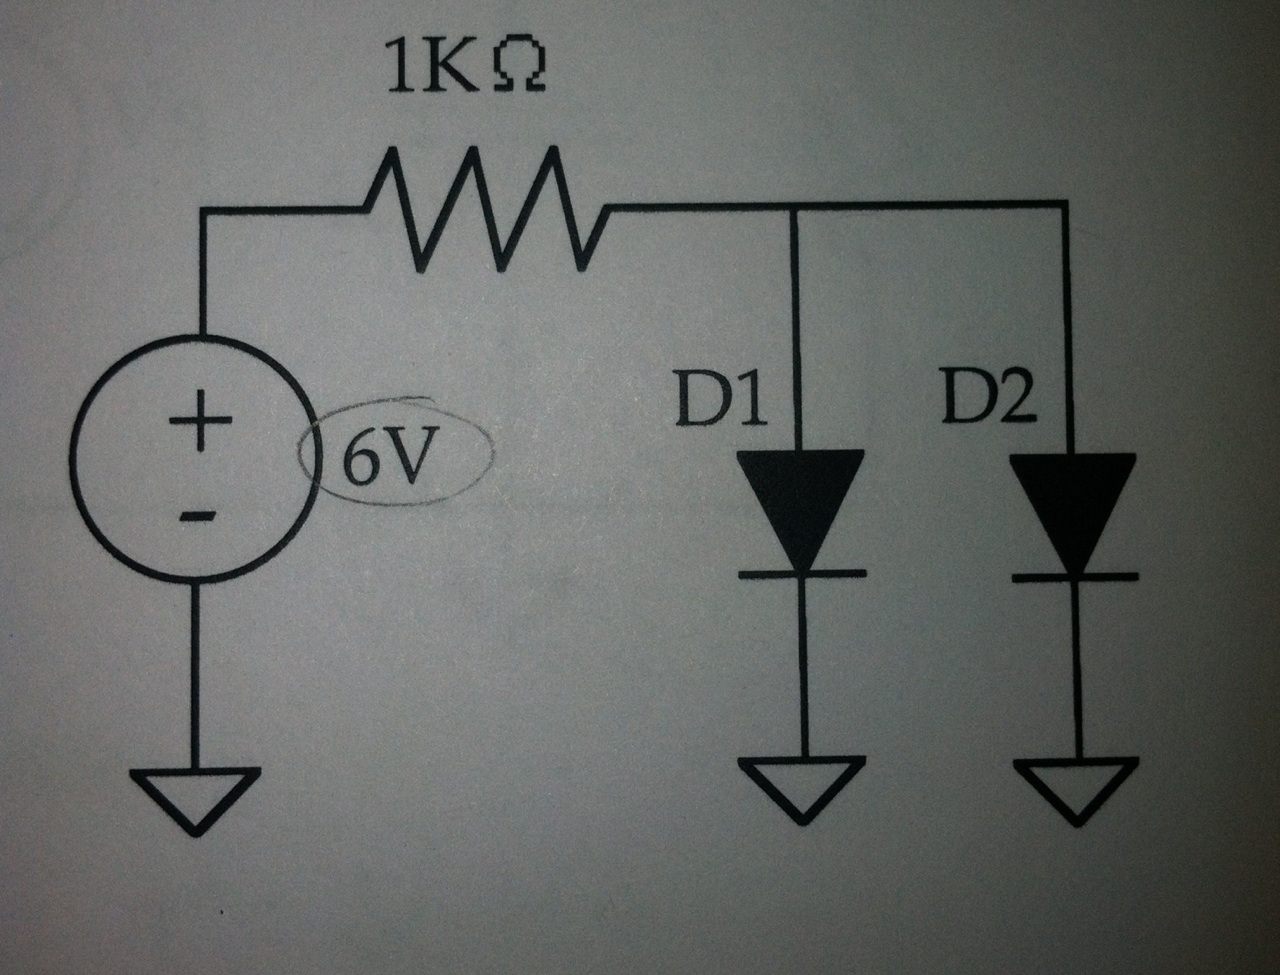 Given that the diode D1 has Is=1x10^-13A and D2 ha